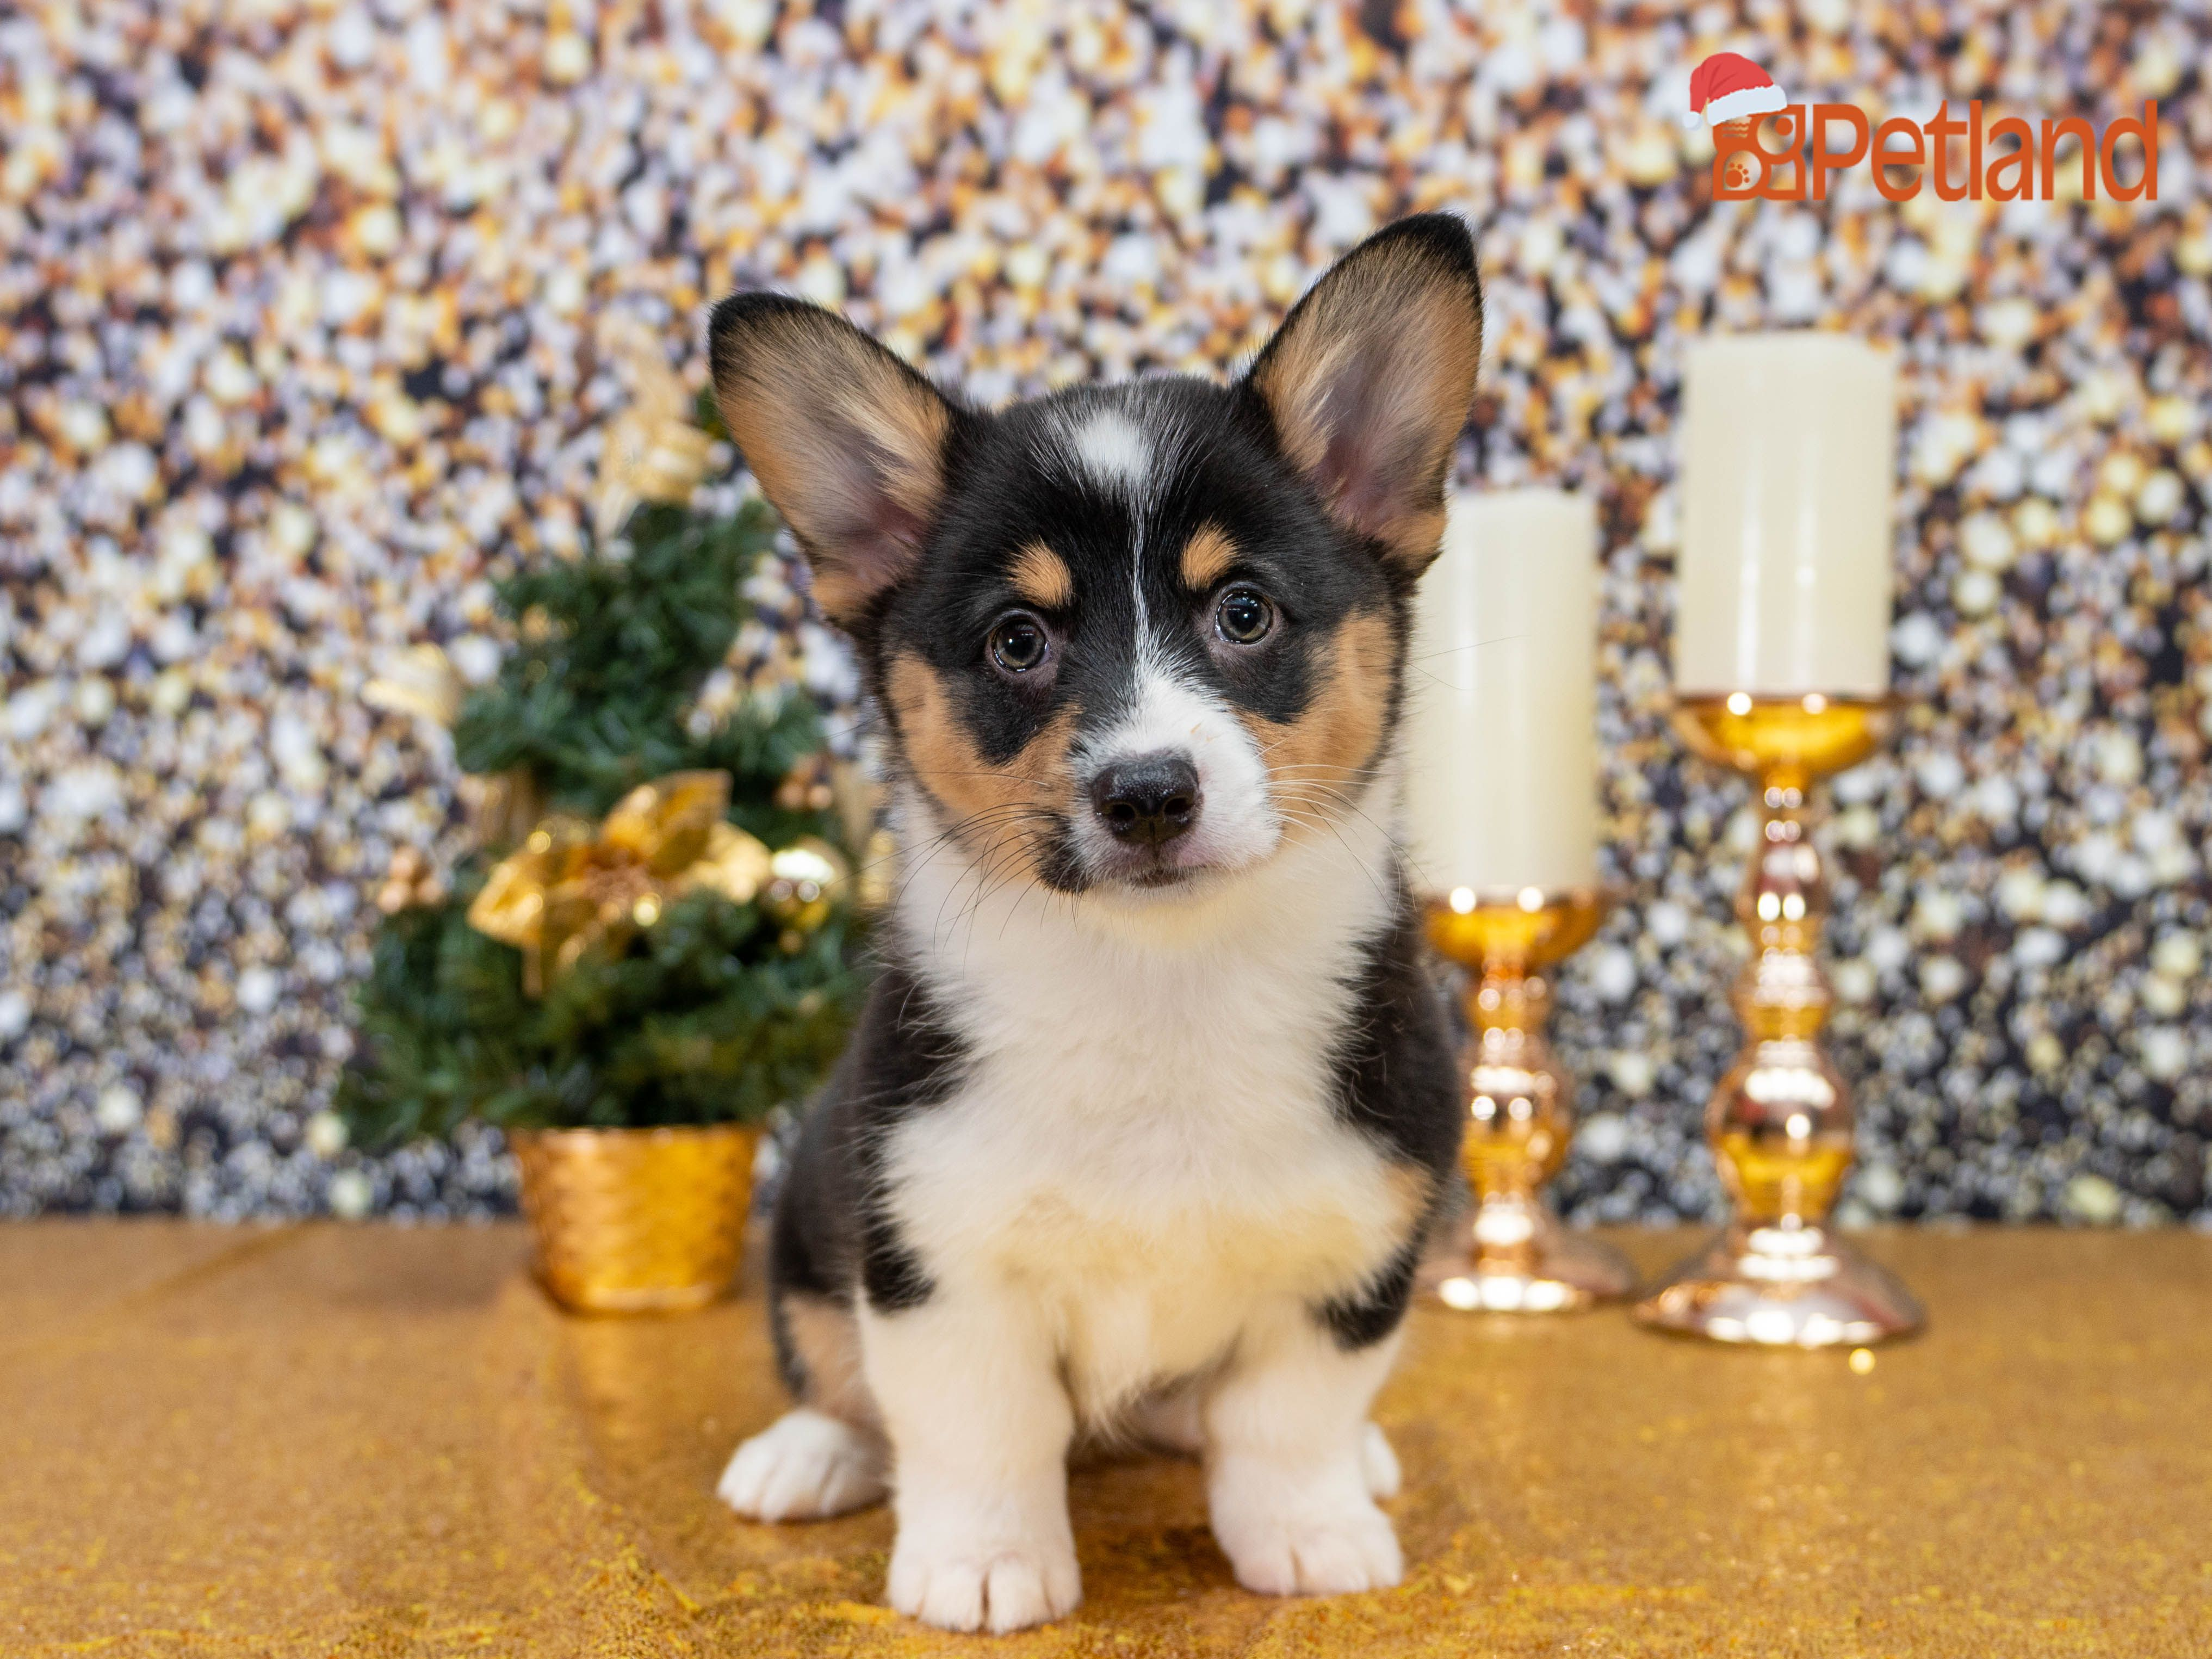 Puppies For Sale Corgi Puppies For Sale Corgi Pembroke Welsh Corgi Puppies